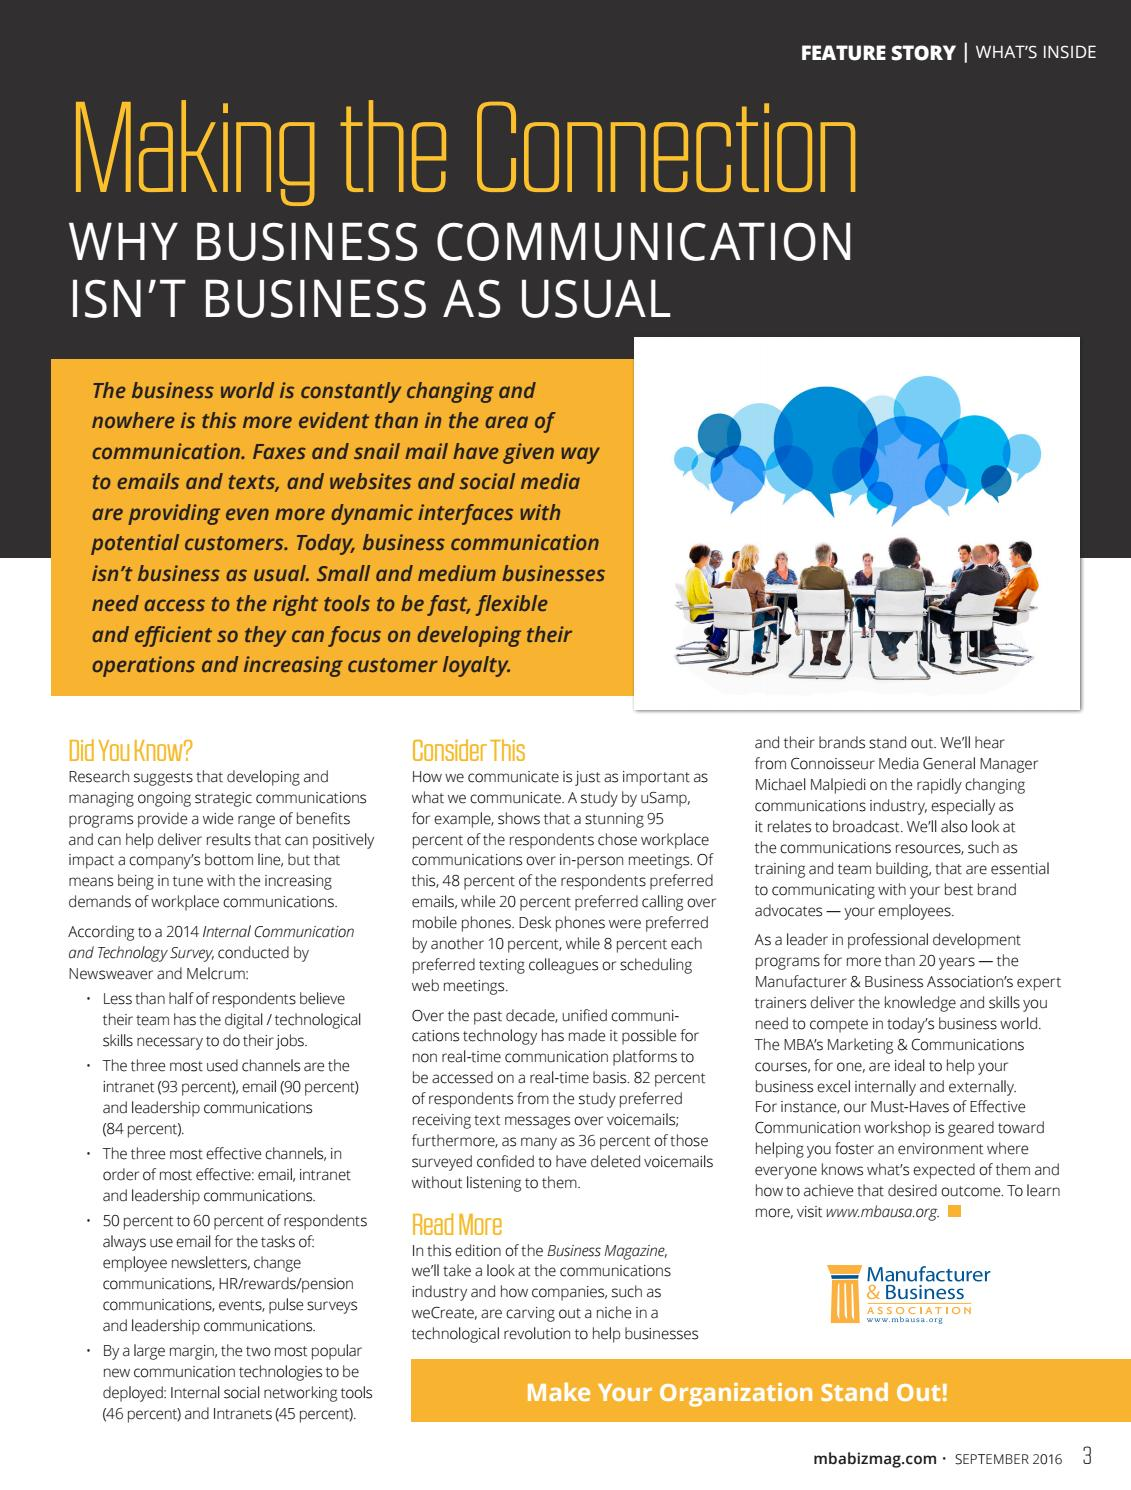 Communicating for results 2014 array september 2016 business magazine by mba business magazine issuu rh issuu fandeluxe Images